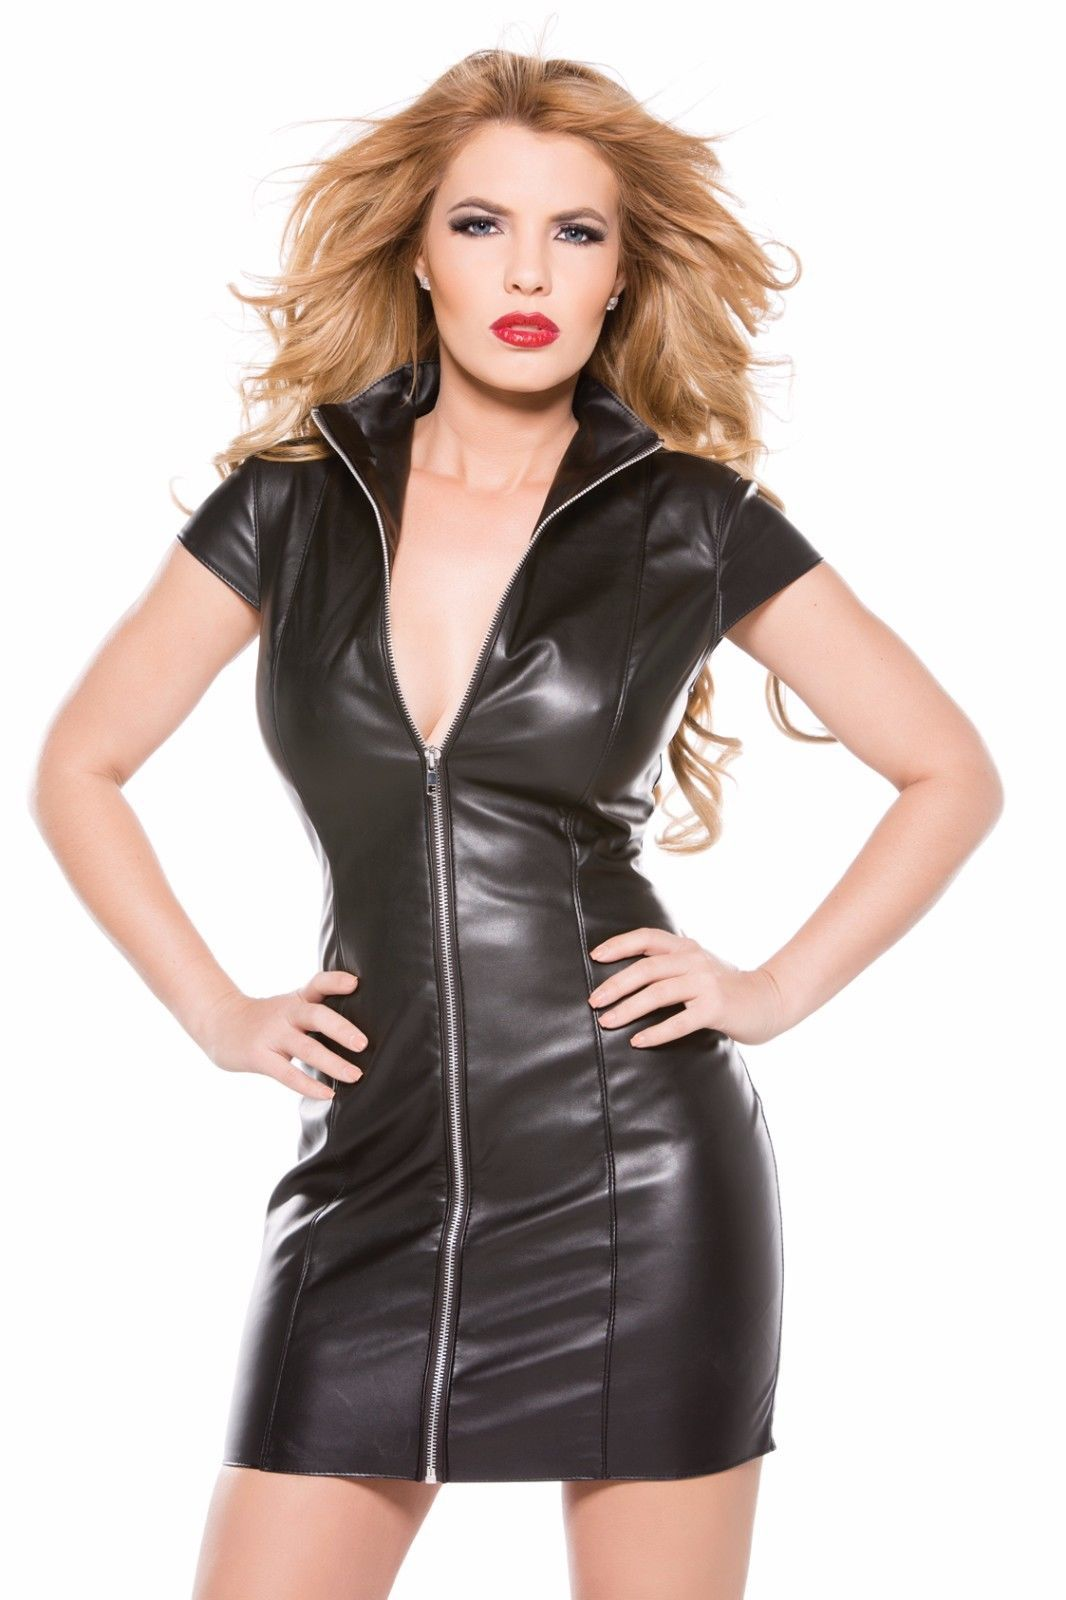 Black Friday Women New Designer Style Cocktail Real 100% Lamb Leather Dress 122